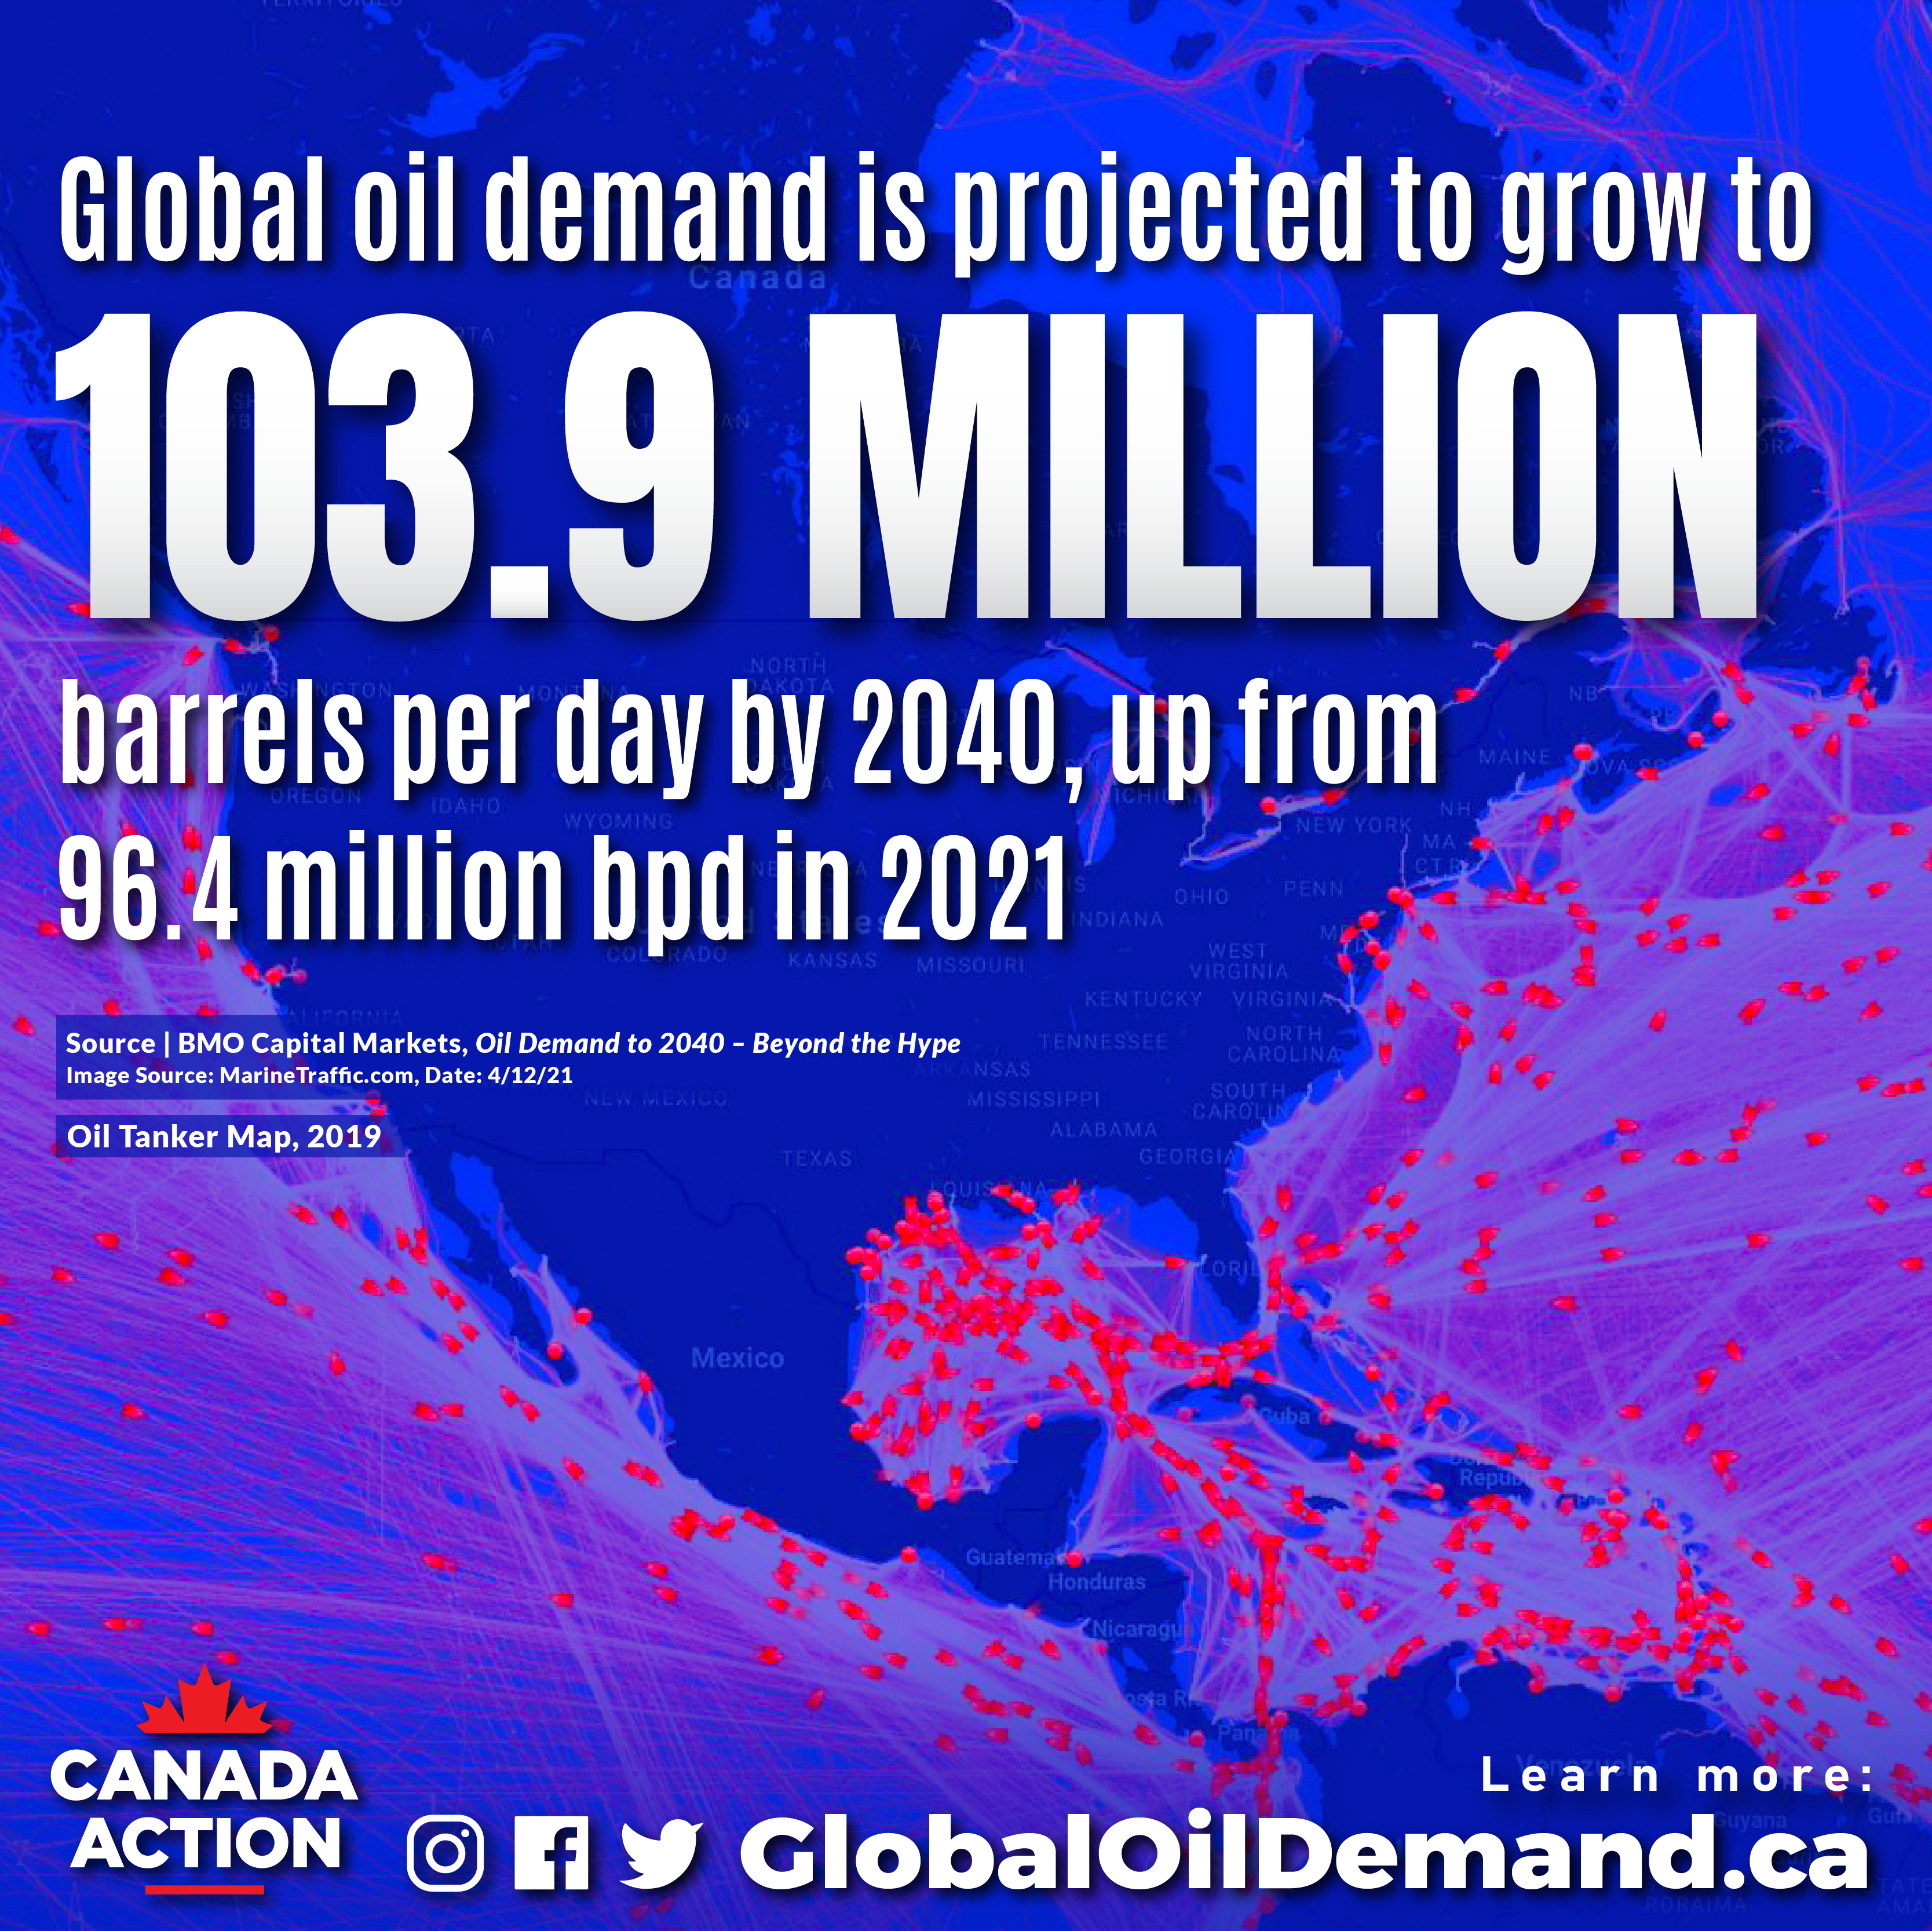 Global Demand Tanker Map Temp - BMO Oil to 2040 Hype - March 2021-03